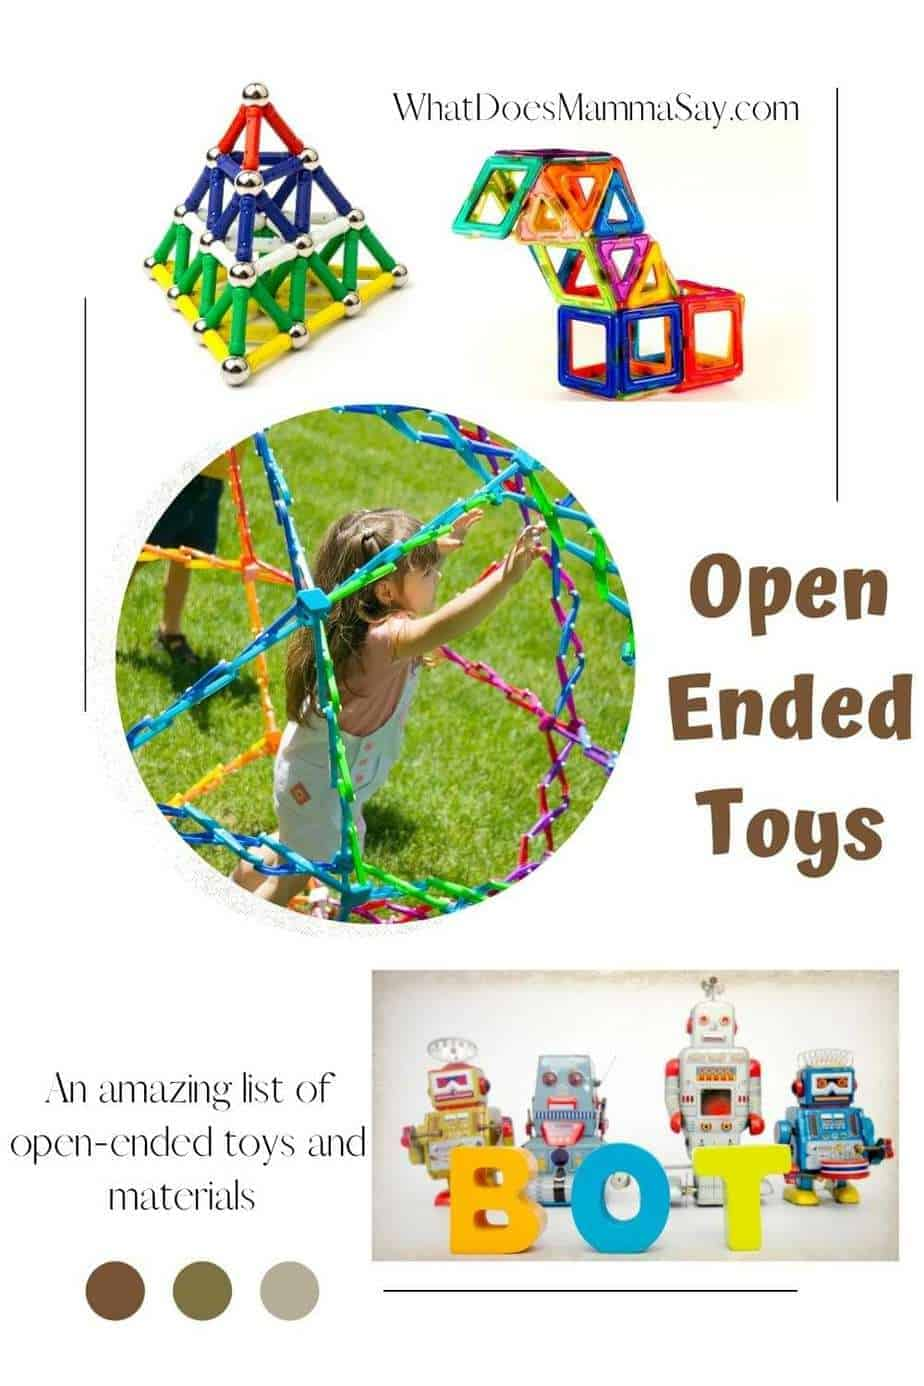 open-ended toys